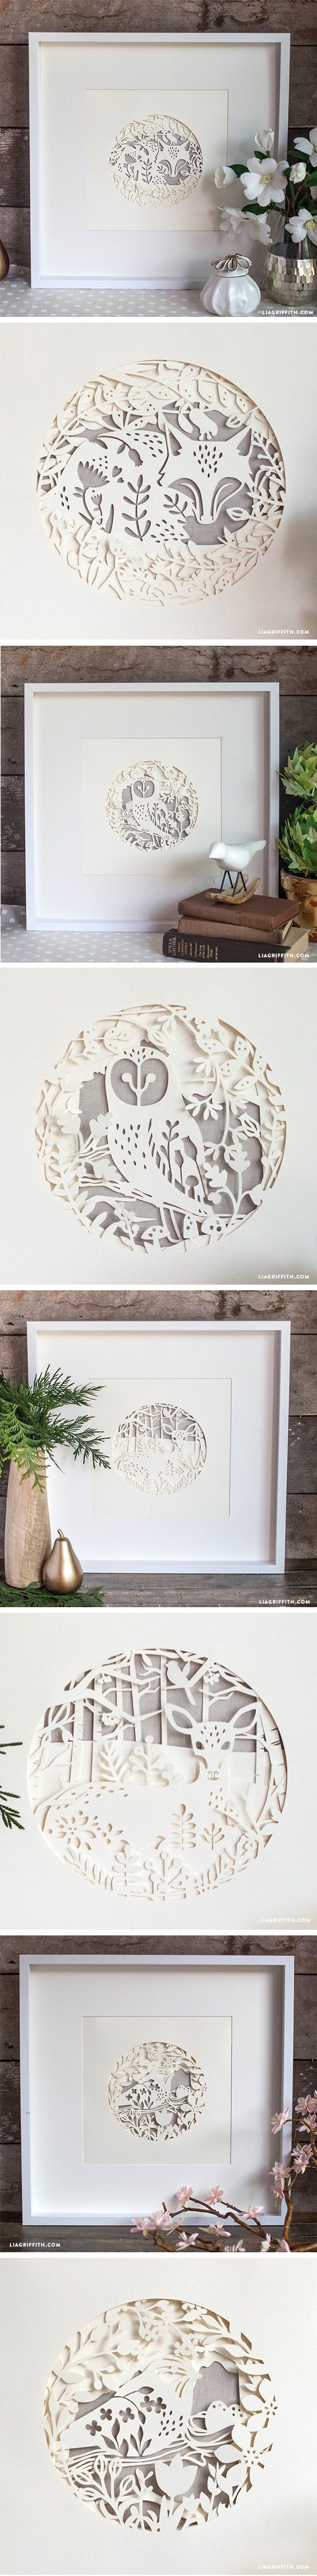 Our Home Decor Cartridge With Cricut Paper Wall Art